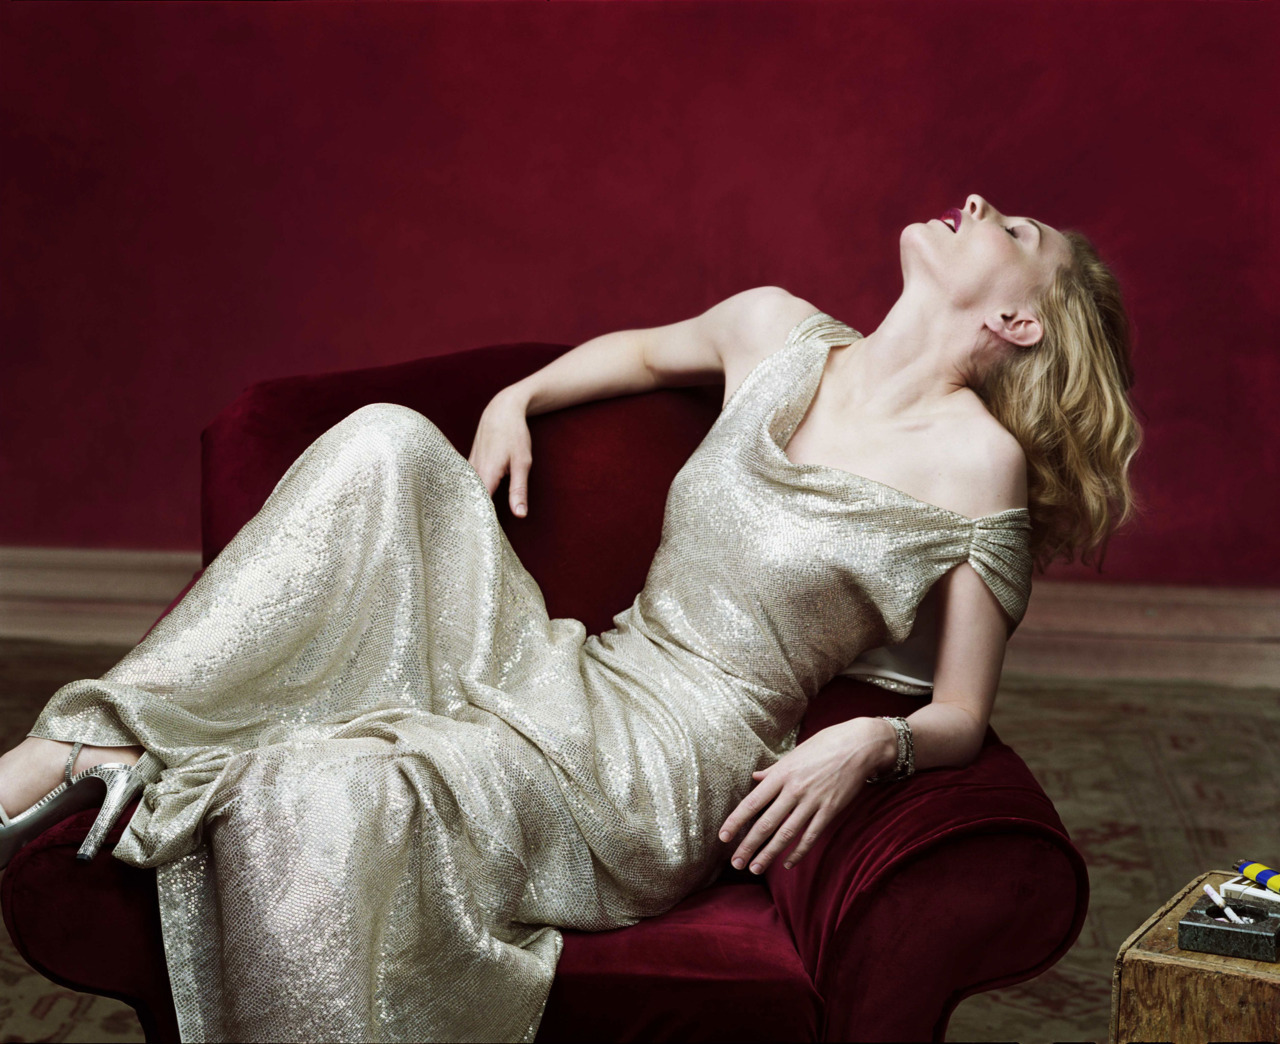 Cate Blanchett - Vogue by Annie Leibovitz, December 2004